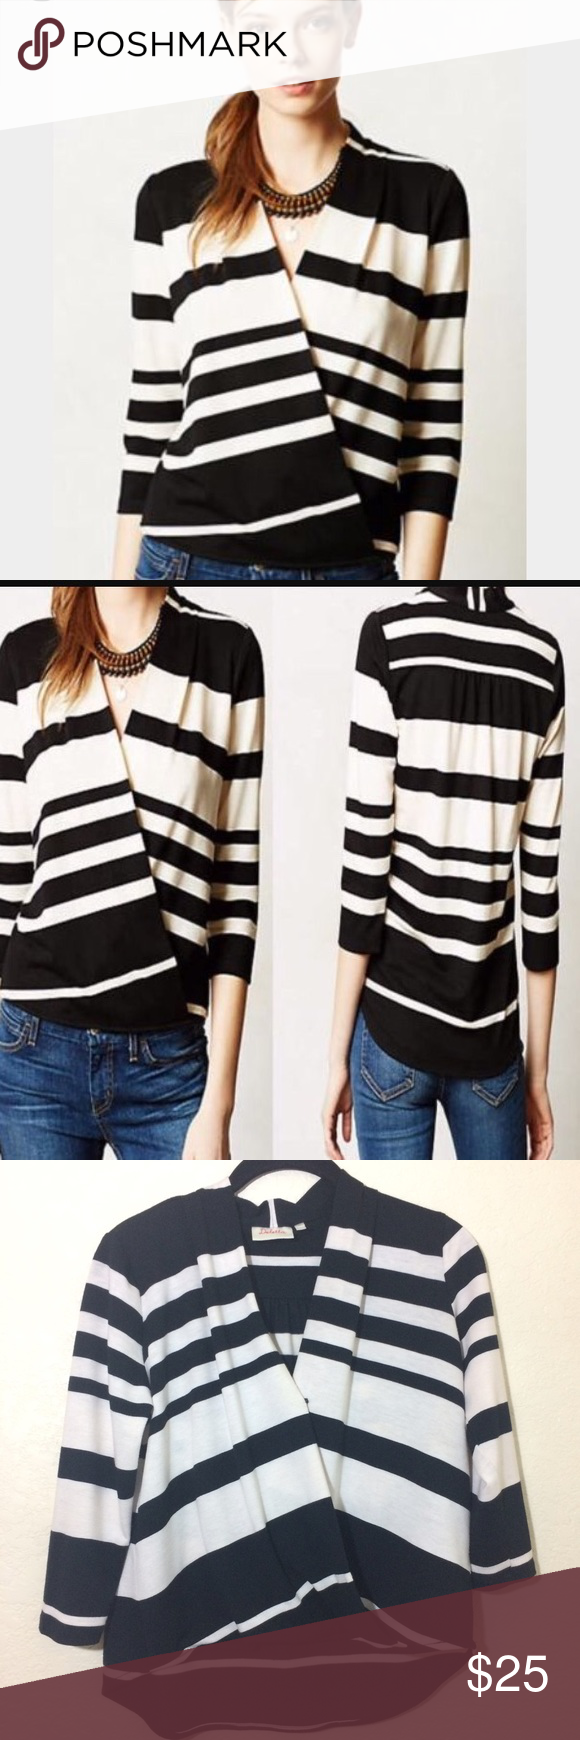 Anthropologie Deletta Striped Faux Wrap Top - Hi Lo Hem. Single snap closure in front.  - Preowned Condition. No rips or stain. No Trades. Anthropologie Tops Blouses